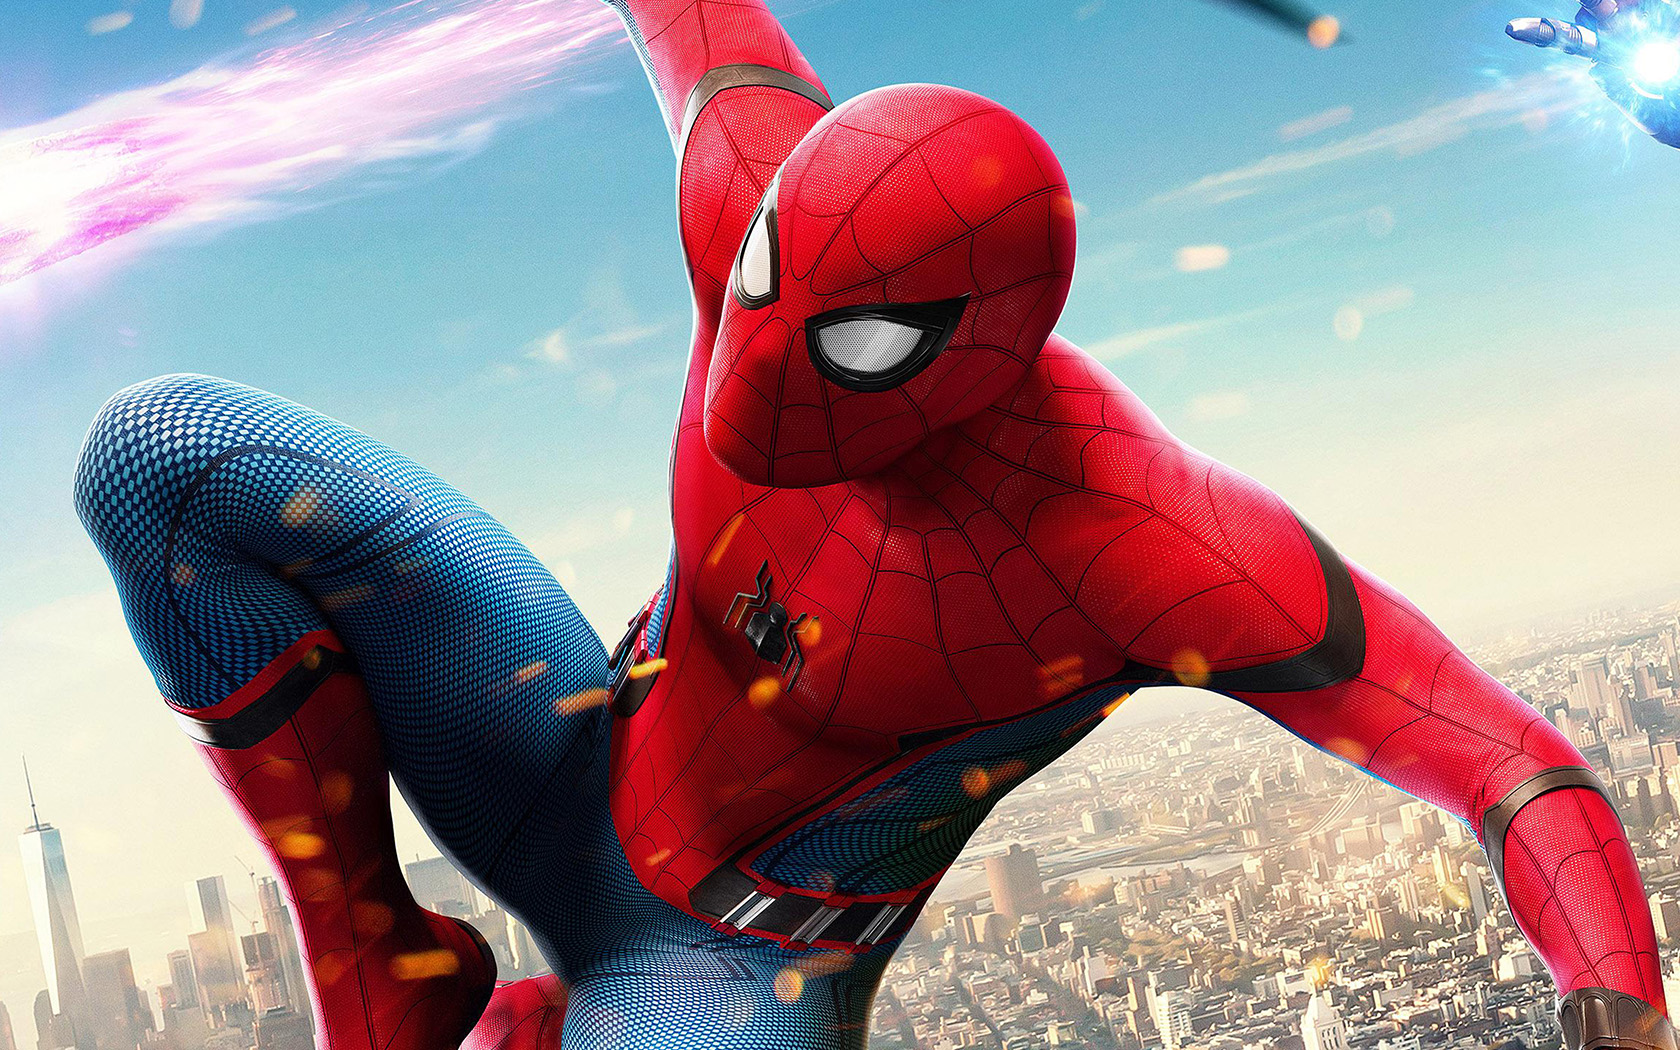 spiderman hero essay Video essay on what makes sam raimi's spider-man films so  i am such a  huge fan of what raimi did with the first couple of spider-man movies  new  iron fist 2 promo spot teases the hero's classic costume.